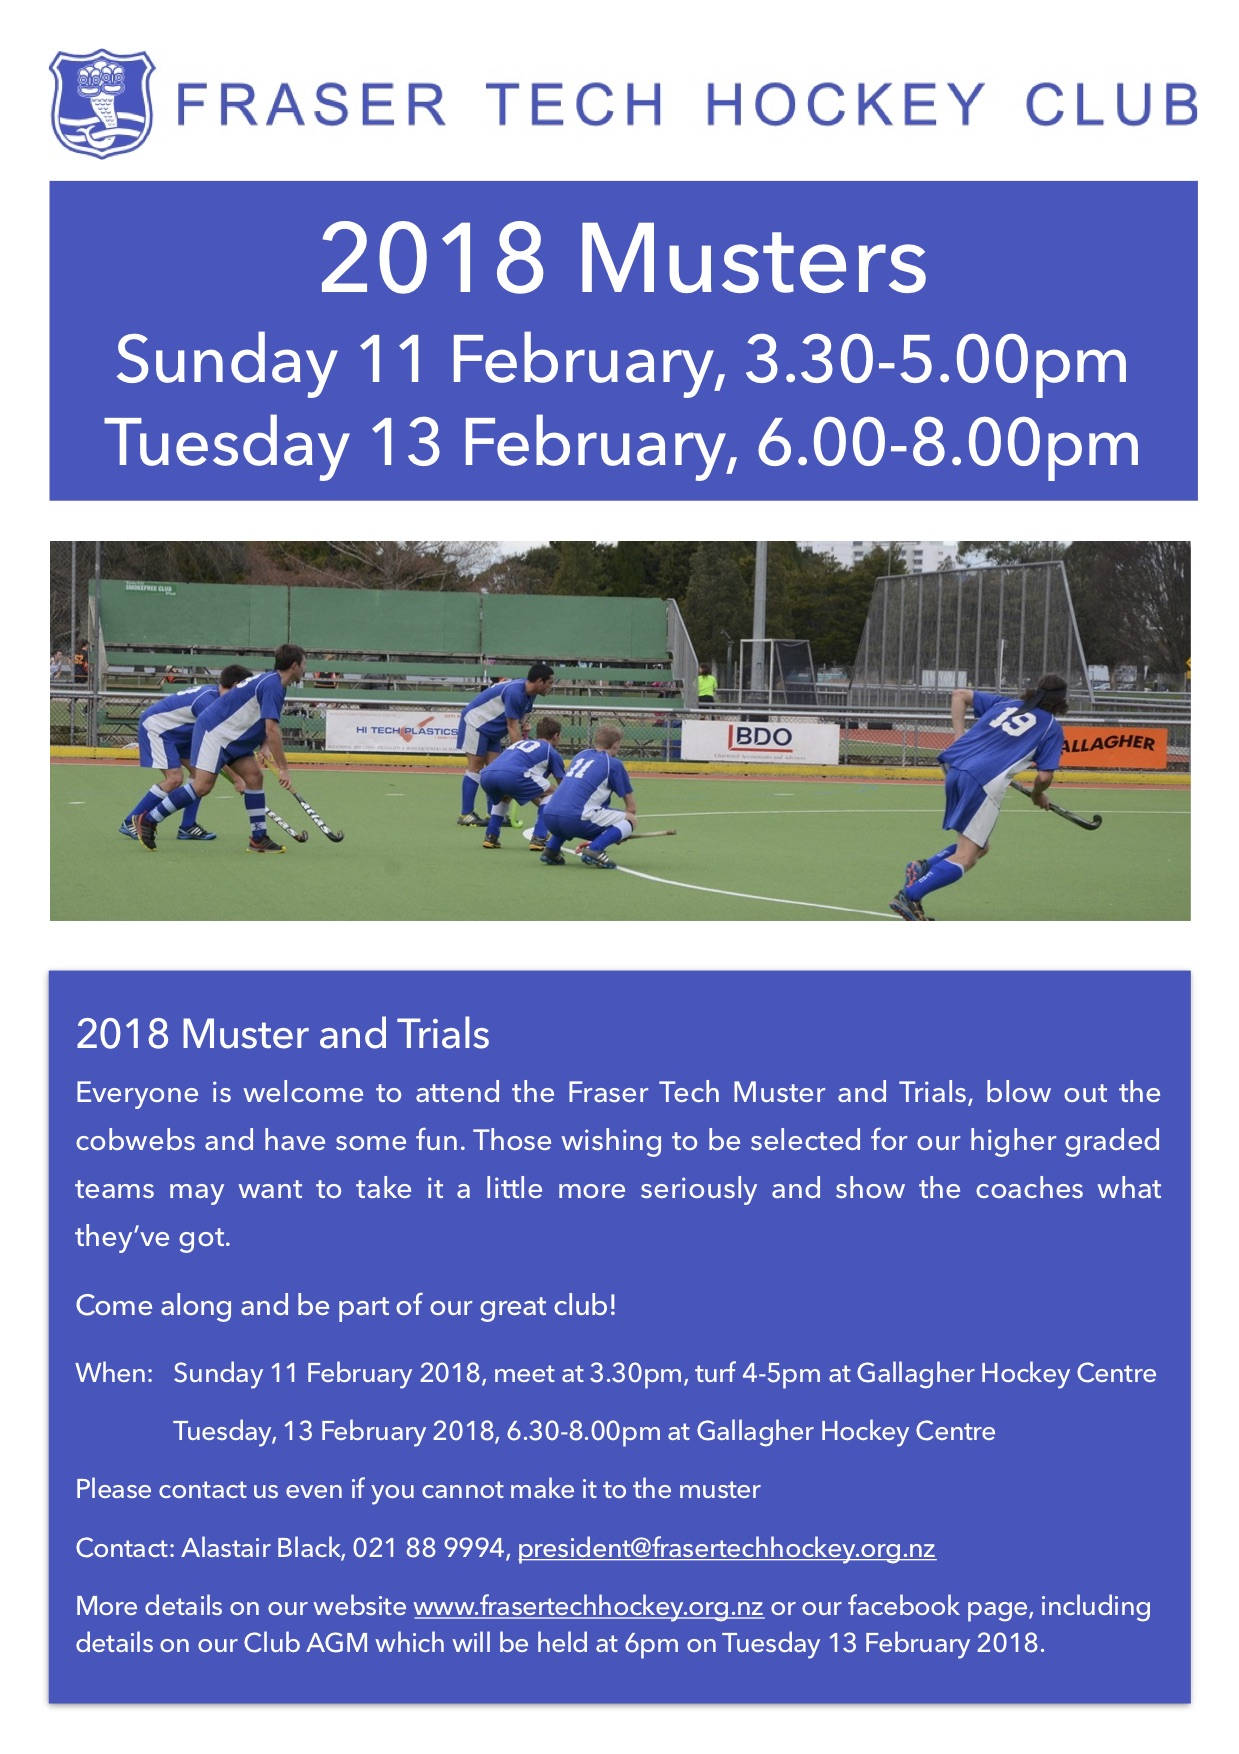 2018 Muster and Trials